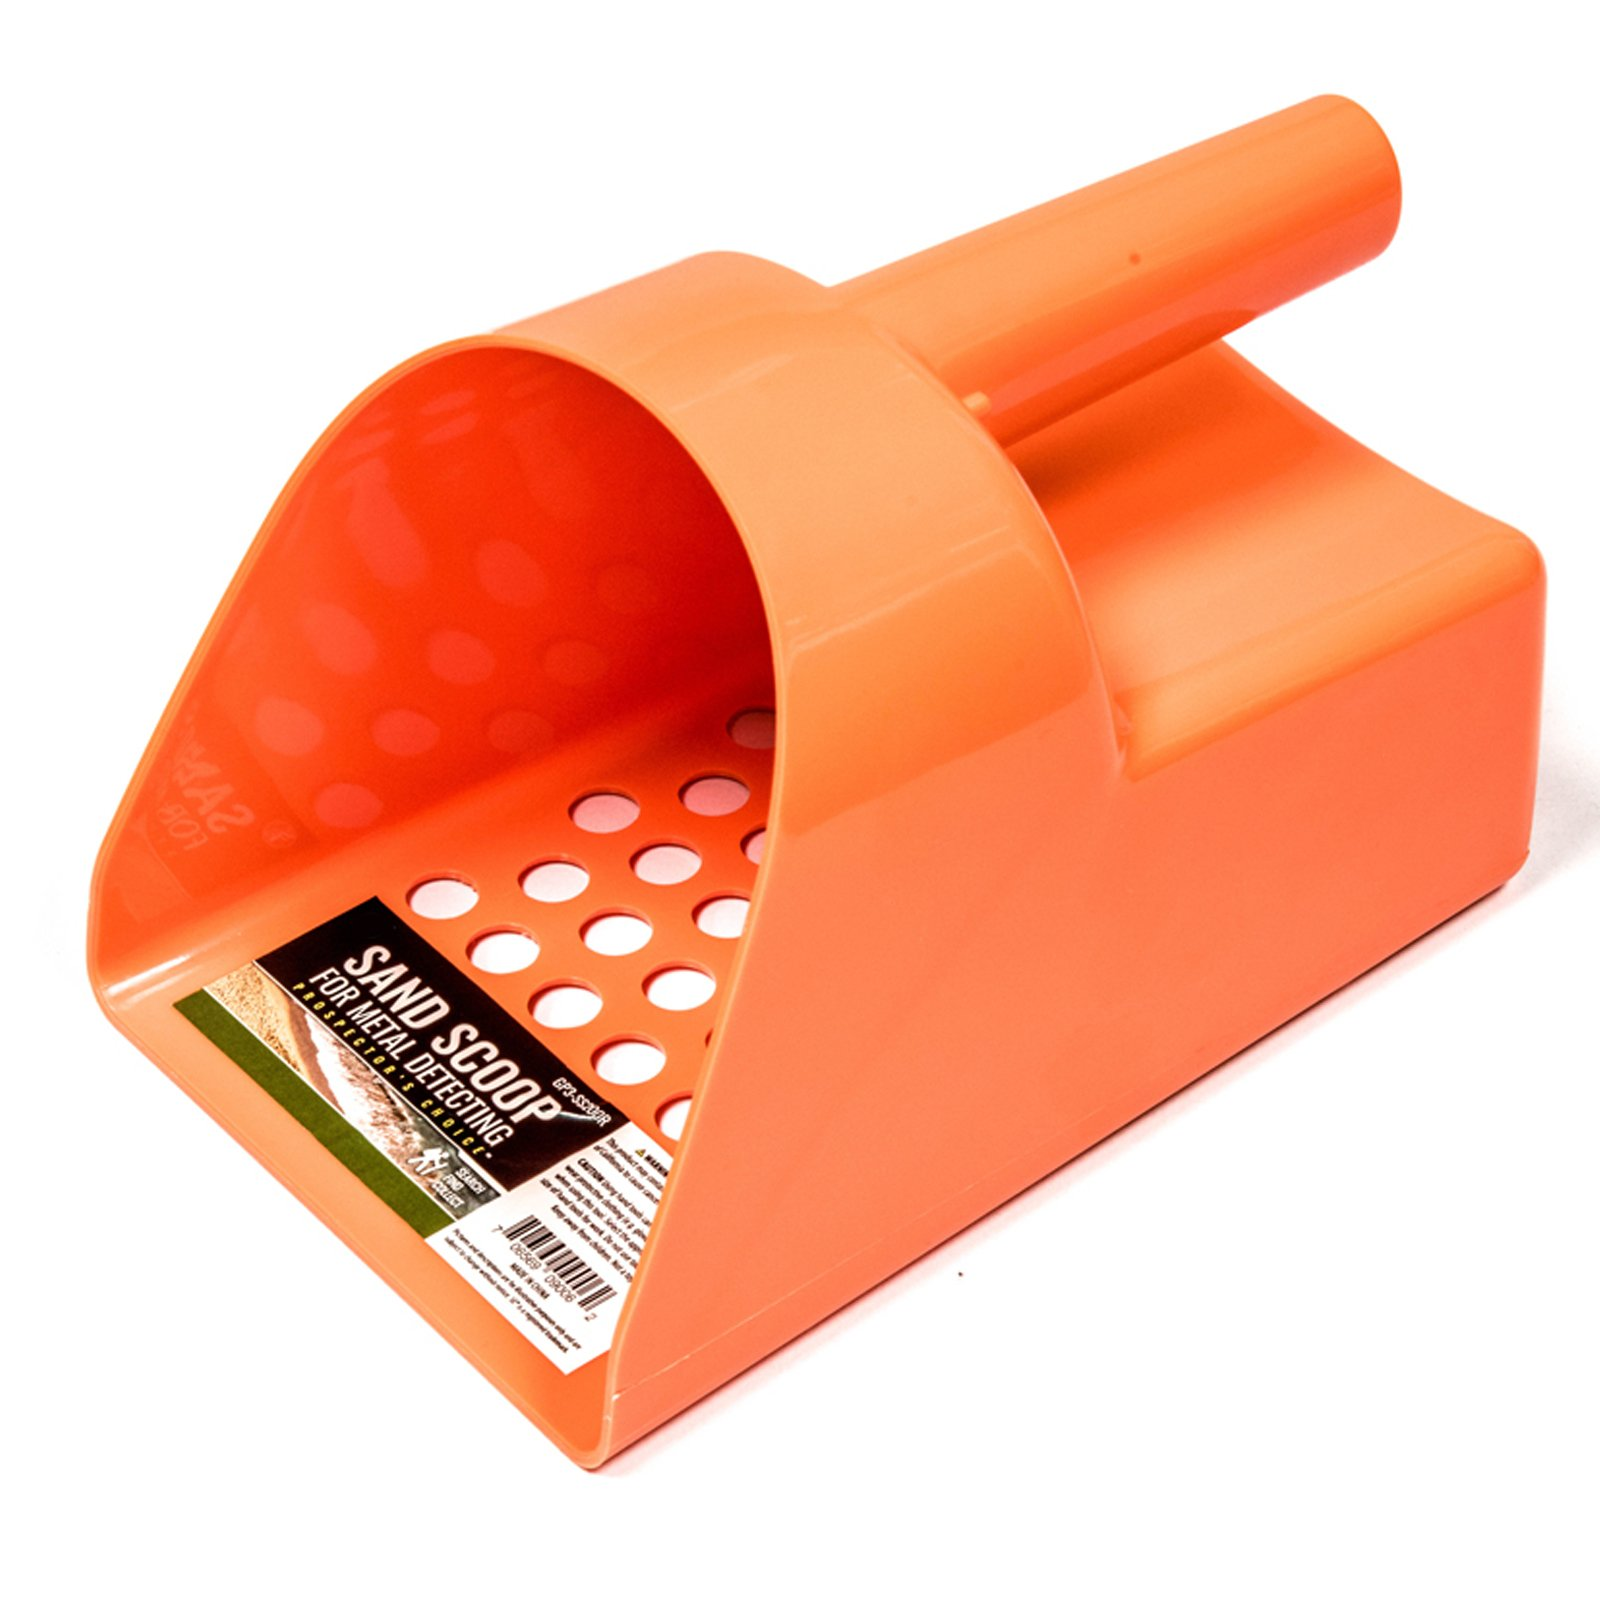 ASR Outdoor 8.5 Inch Orange Plastic Sand Scoop for Gold Panning